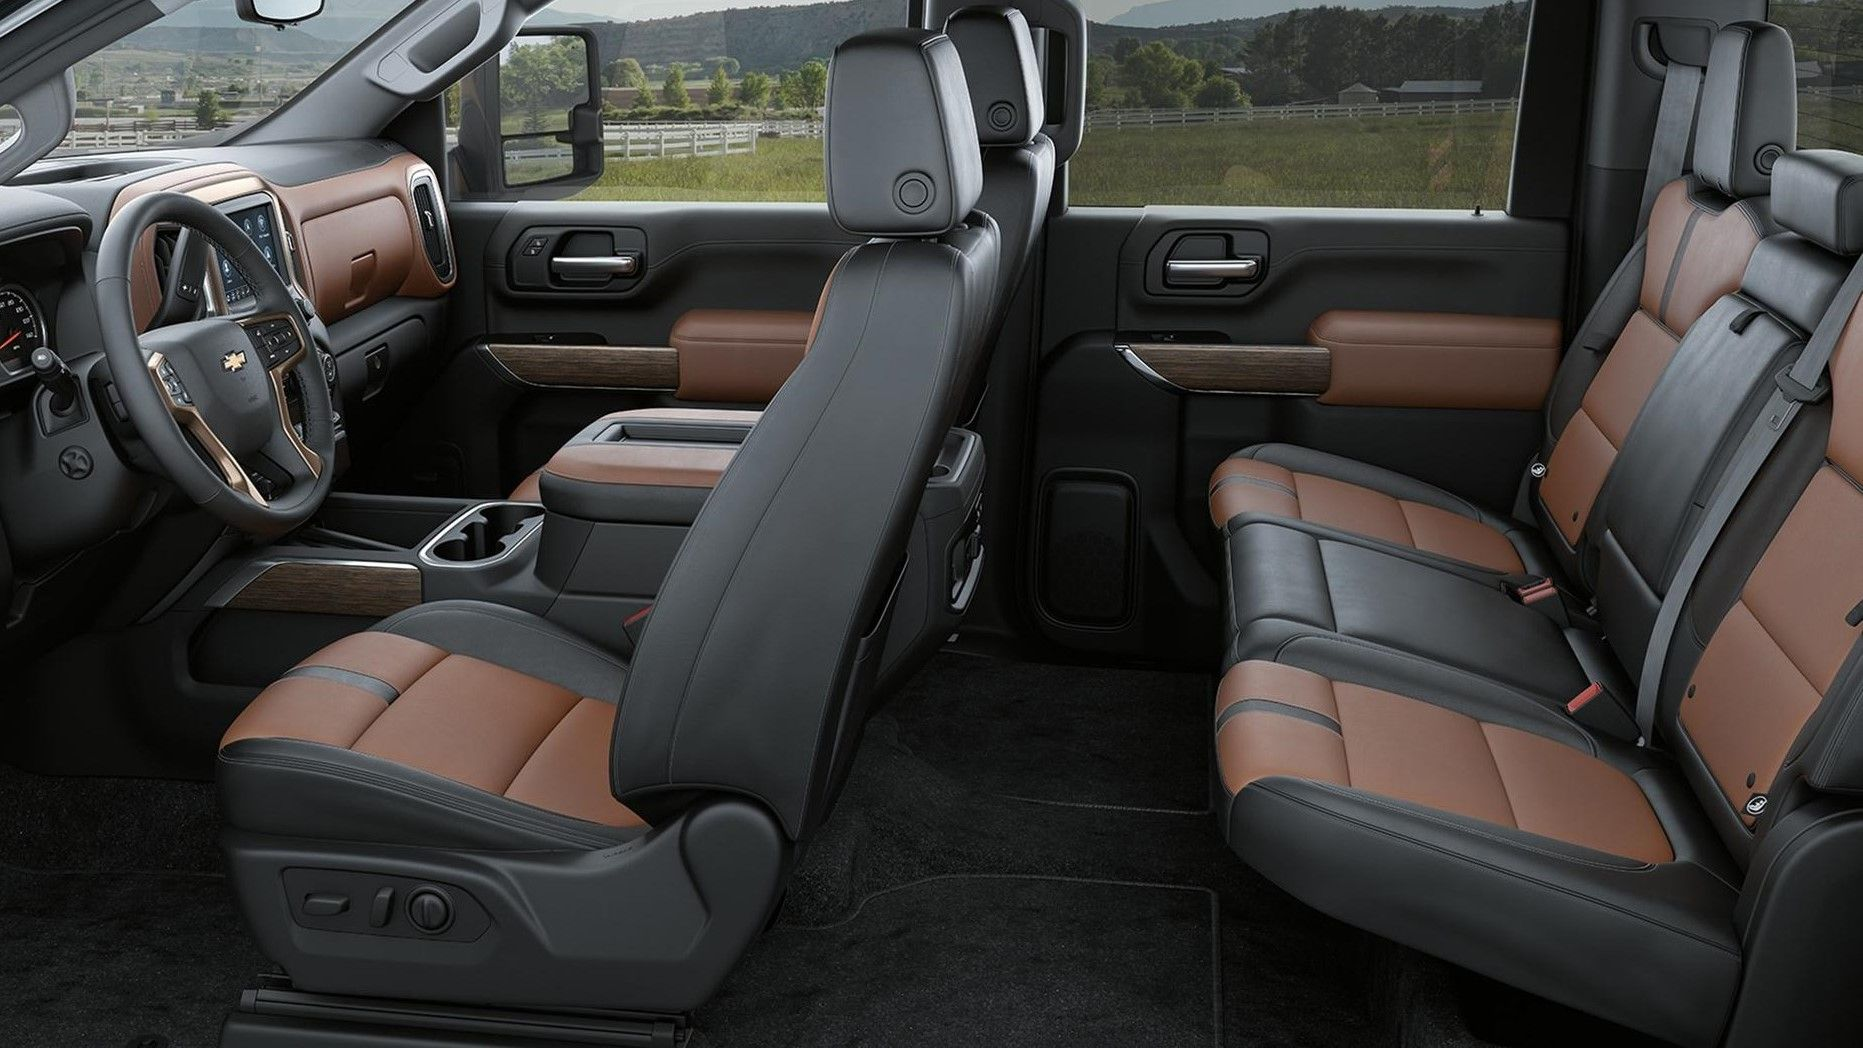 2021 Chevrolet Silverado 3500hd Crew Cab Review Trims Performance Towing Capacity And Rivals